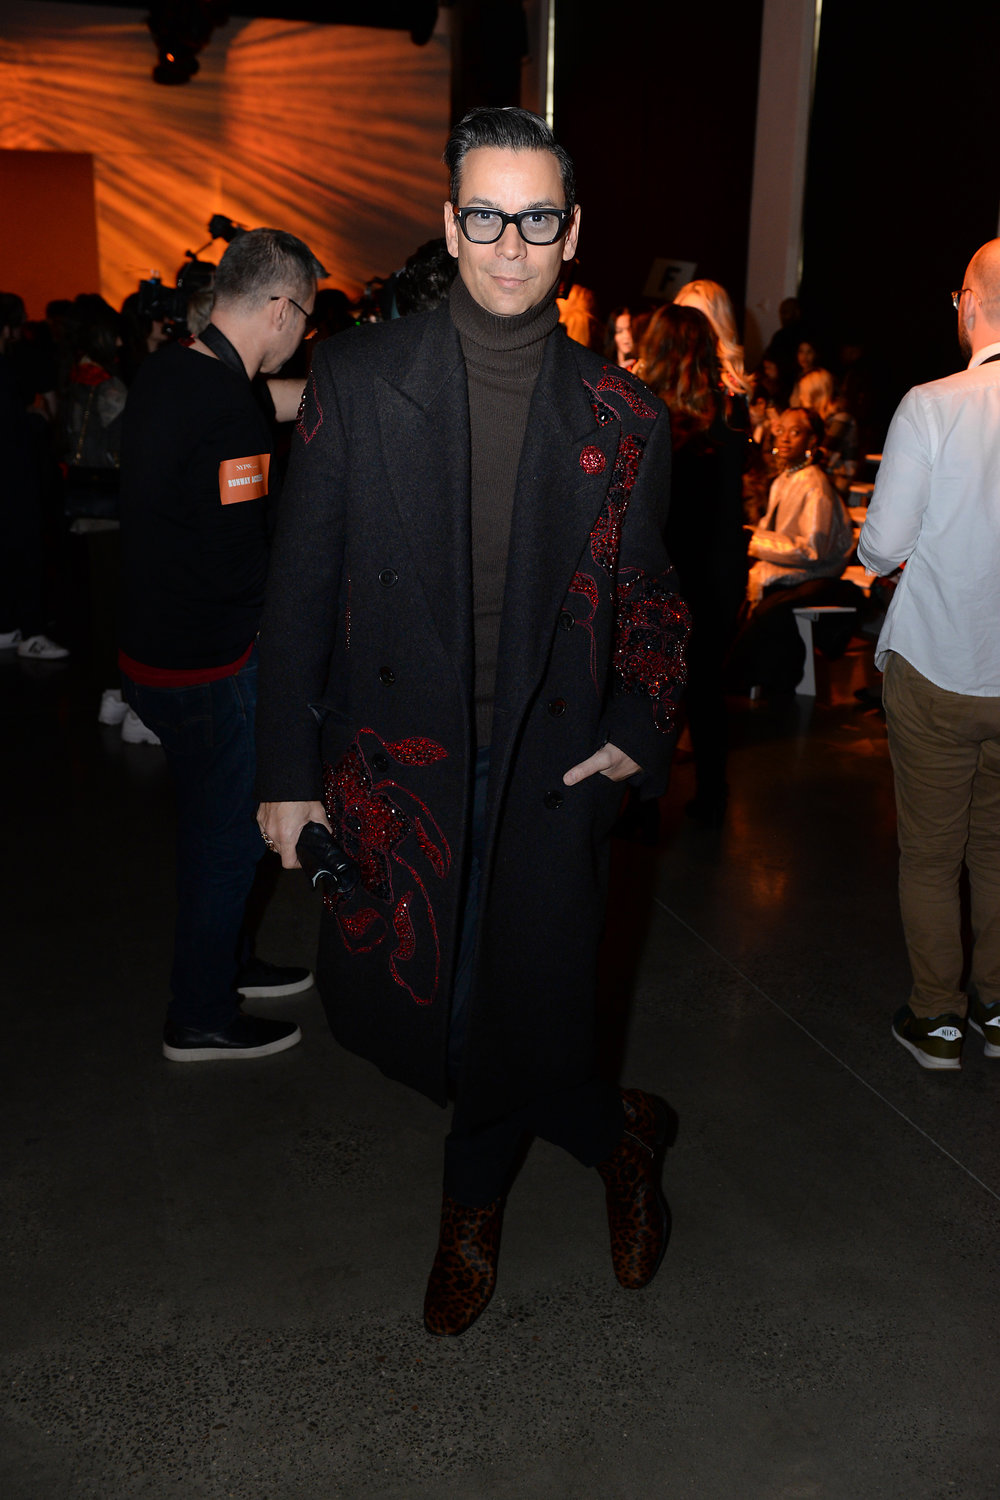 James Aguiar, Fashion Director and VP of Creative for Modern Luxury attends Naeem Khan NYFW FW18 on 2.13.18 wearing Fleur'd Pins Red Glitter Rose - photo by Andrew Werner.jpg